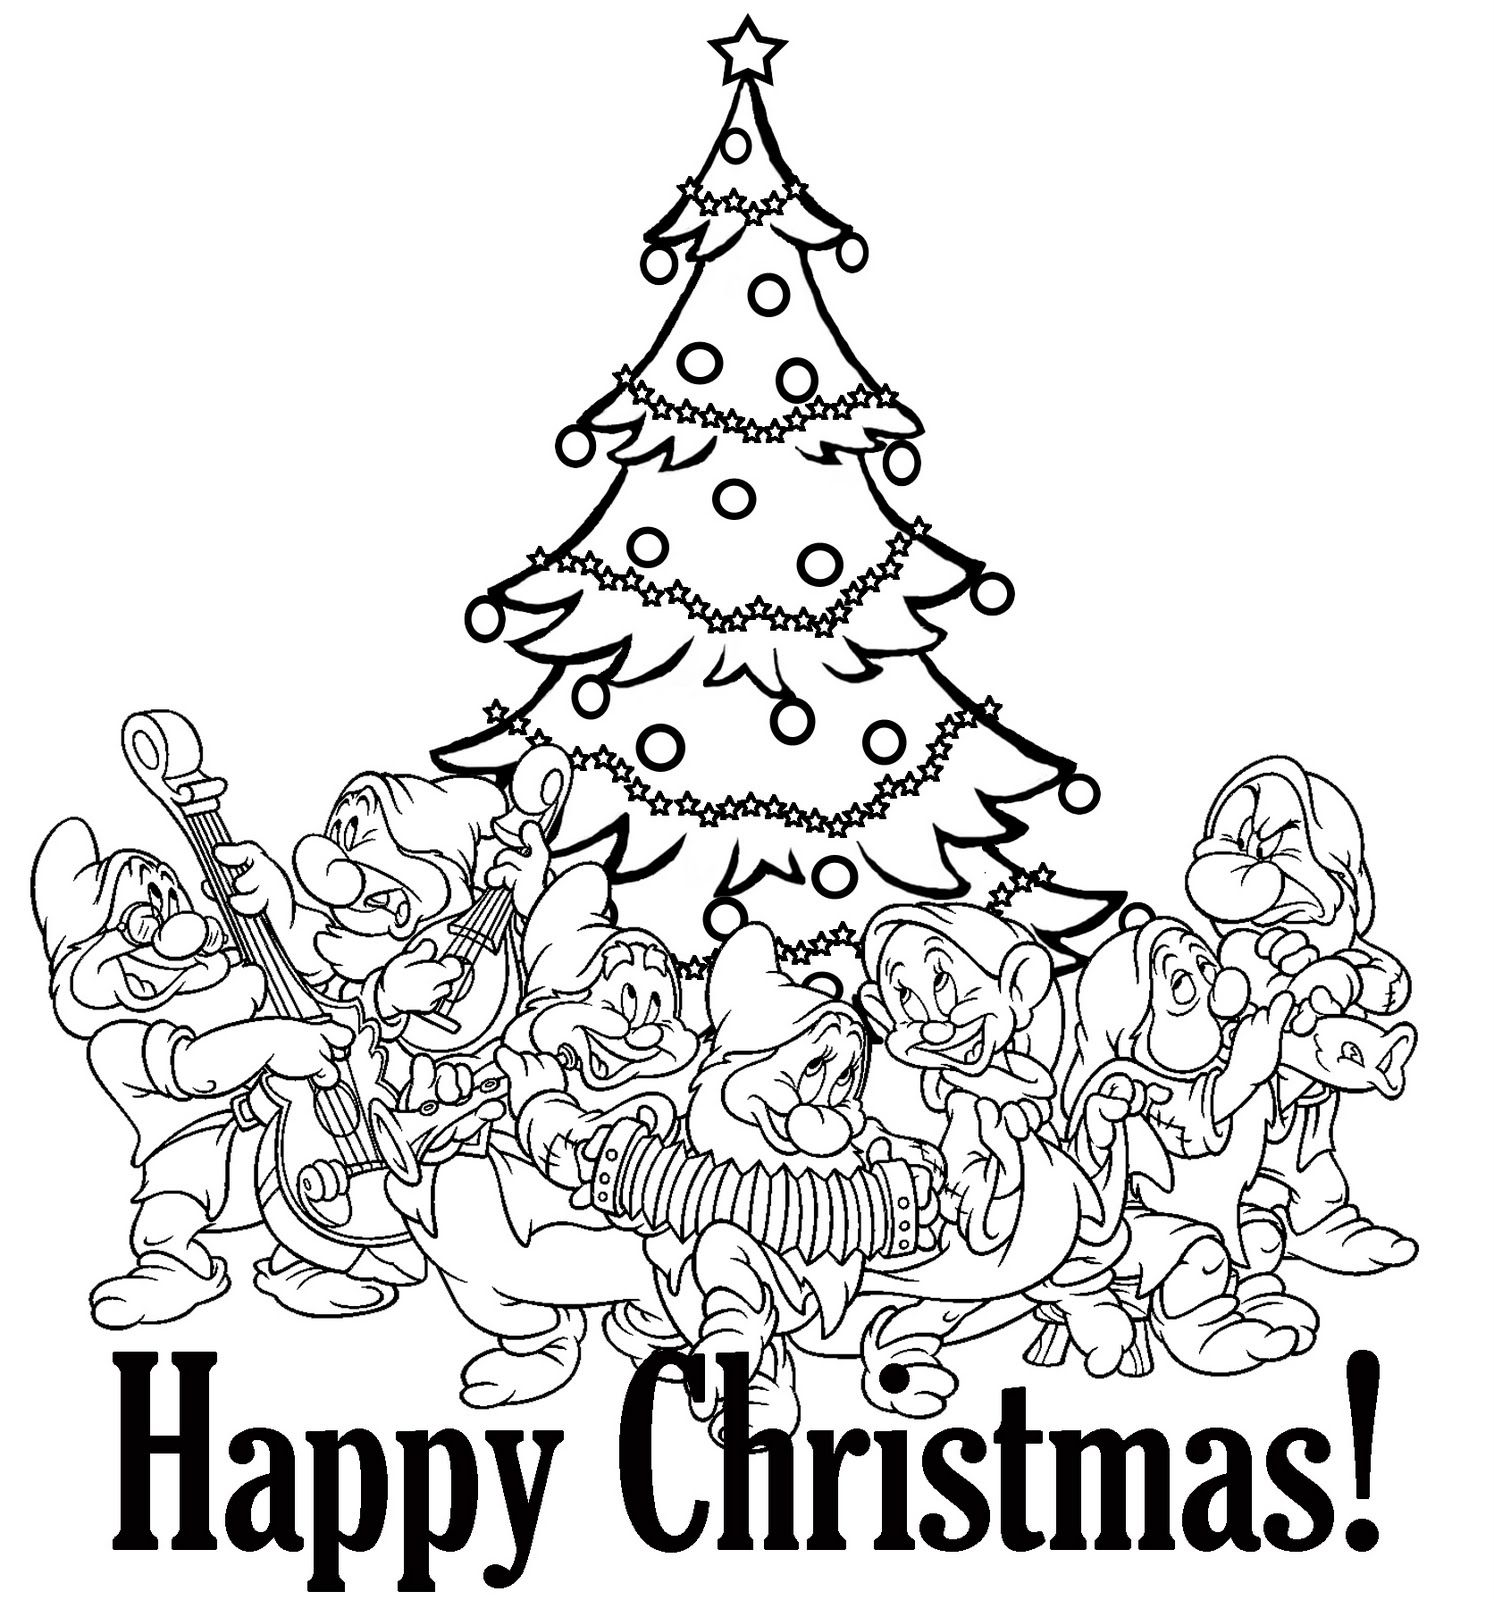 normal princess coloring pages | Snow White's seven dwarfs - Disney Christmas coloring page ...